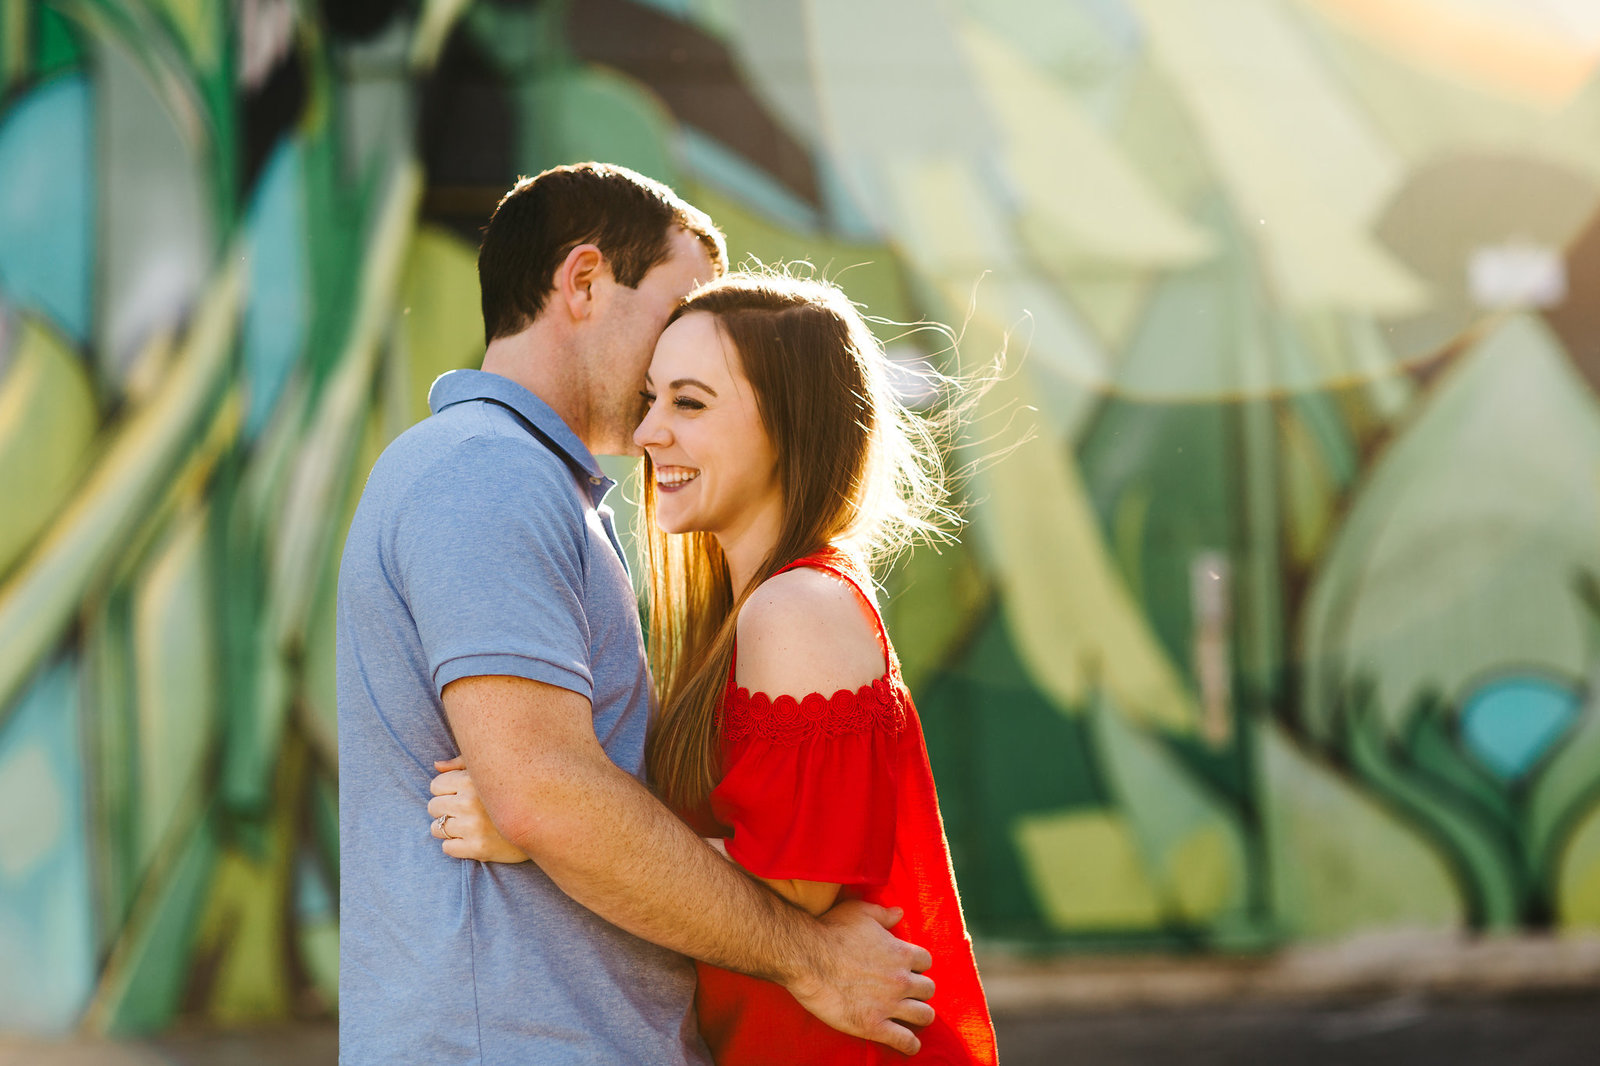 SaraLane-Stevie-Photography-Engagement-Shoot-Lyndsey-Sam-Nashville-TN-8PS